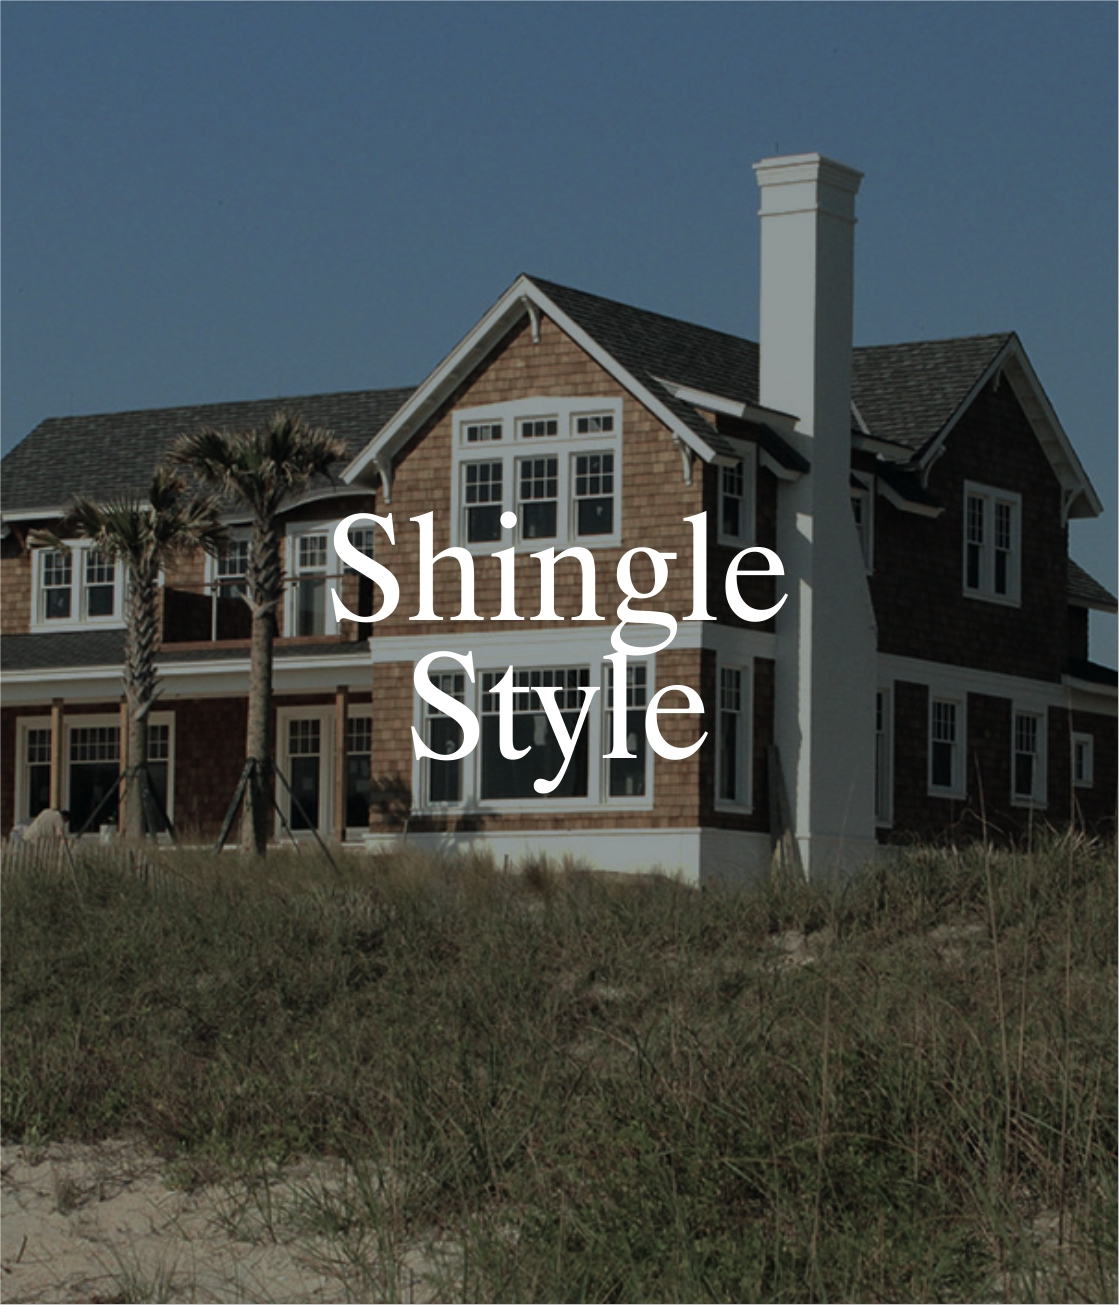 shingle style1